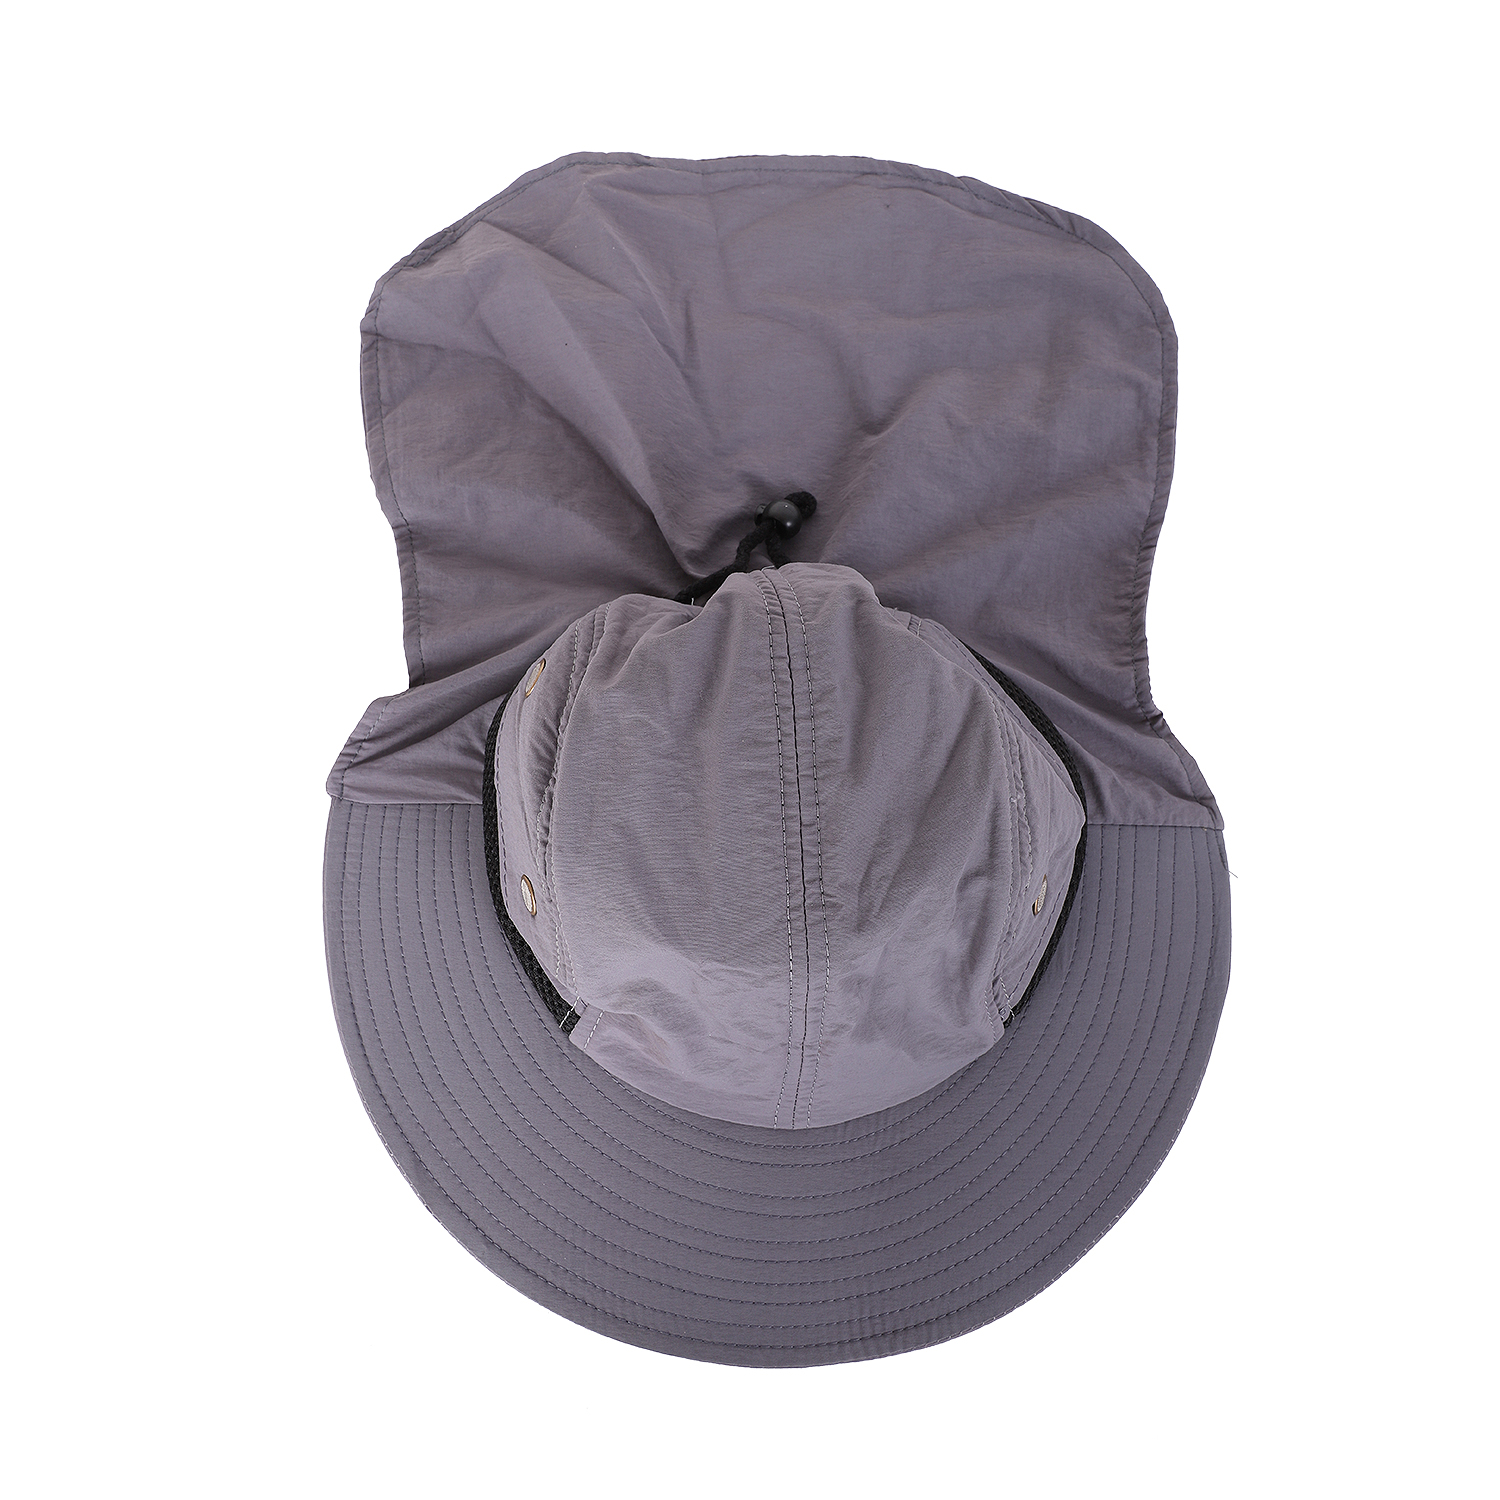 LGFM-Outdoor Fishing Hiking Boonie Snap Hat Brim Ear Neck Cover Sun Flap Cap